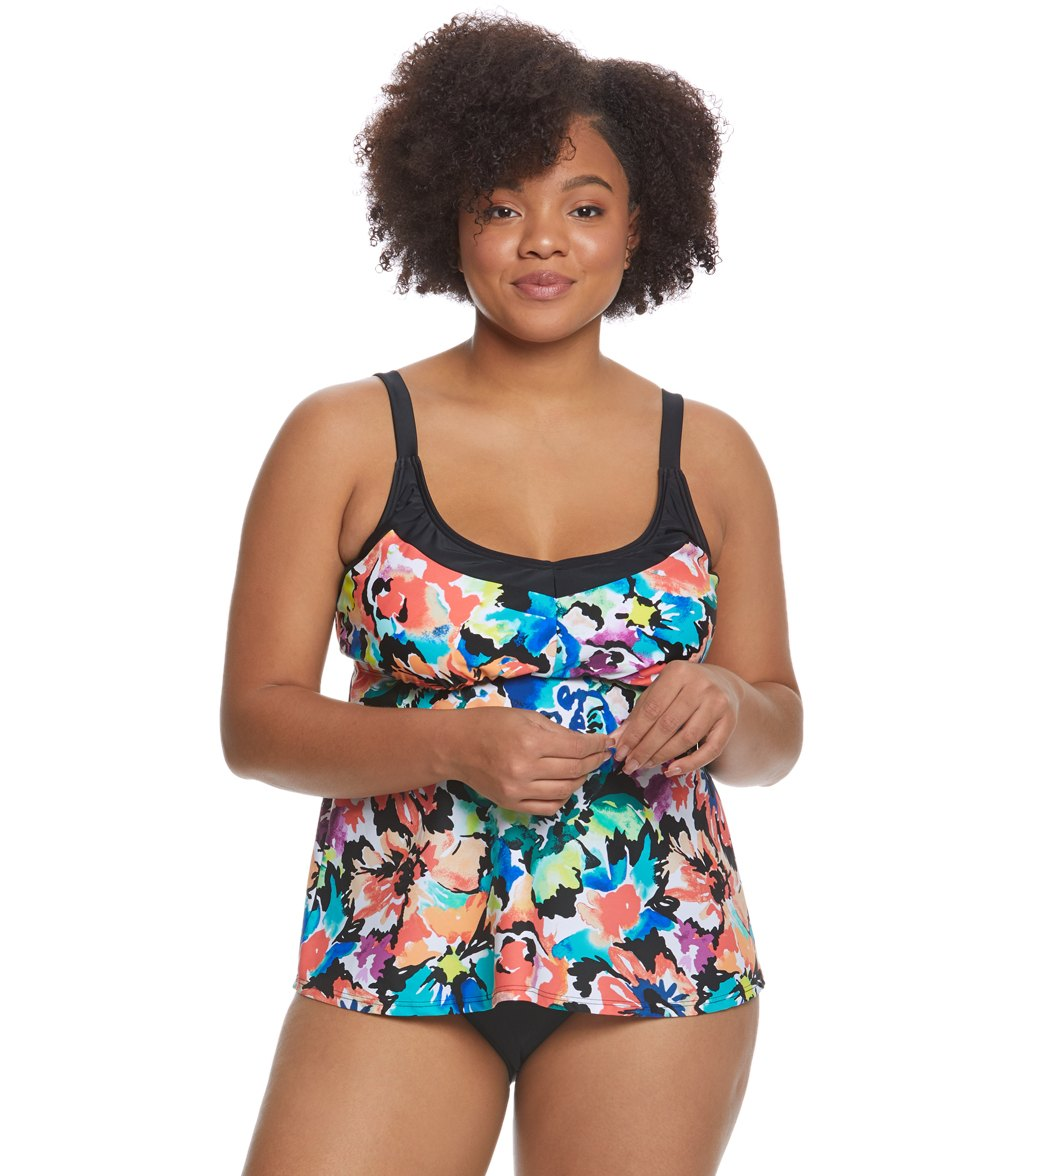 af39c64d123 ... Maxine Plus Size Blossom Underwire Tankini Top. Play Video. Play Video